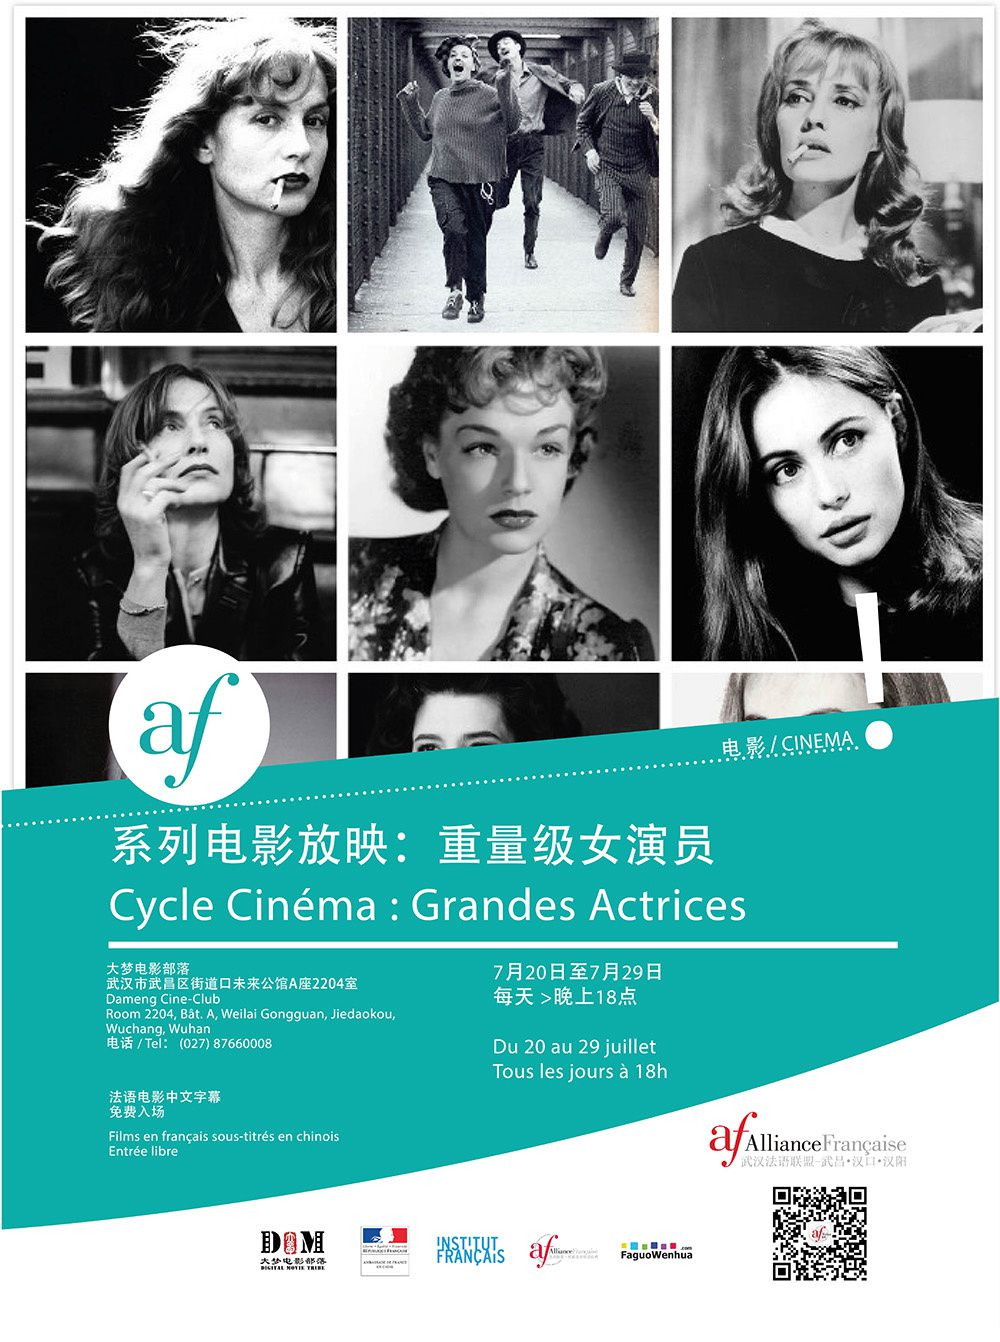 Cycle Cinéma : Grandes Actrices